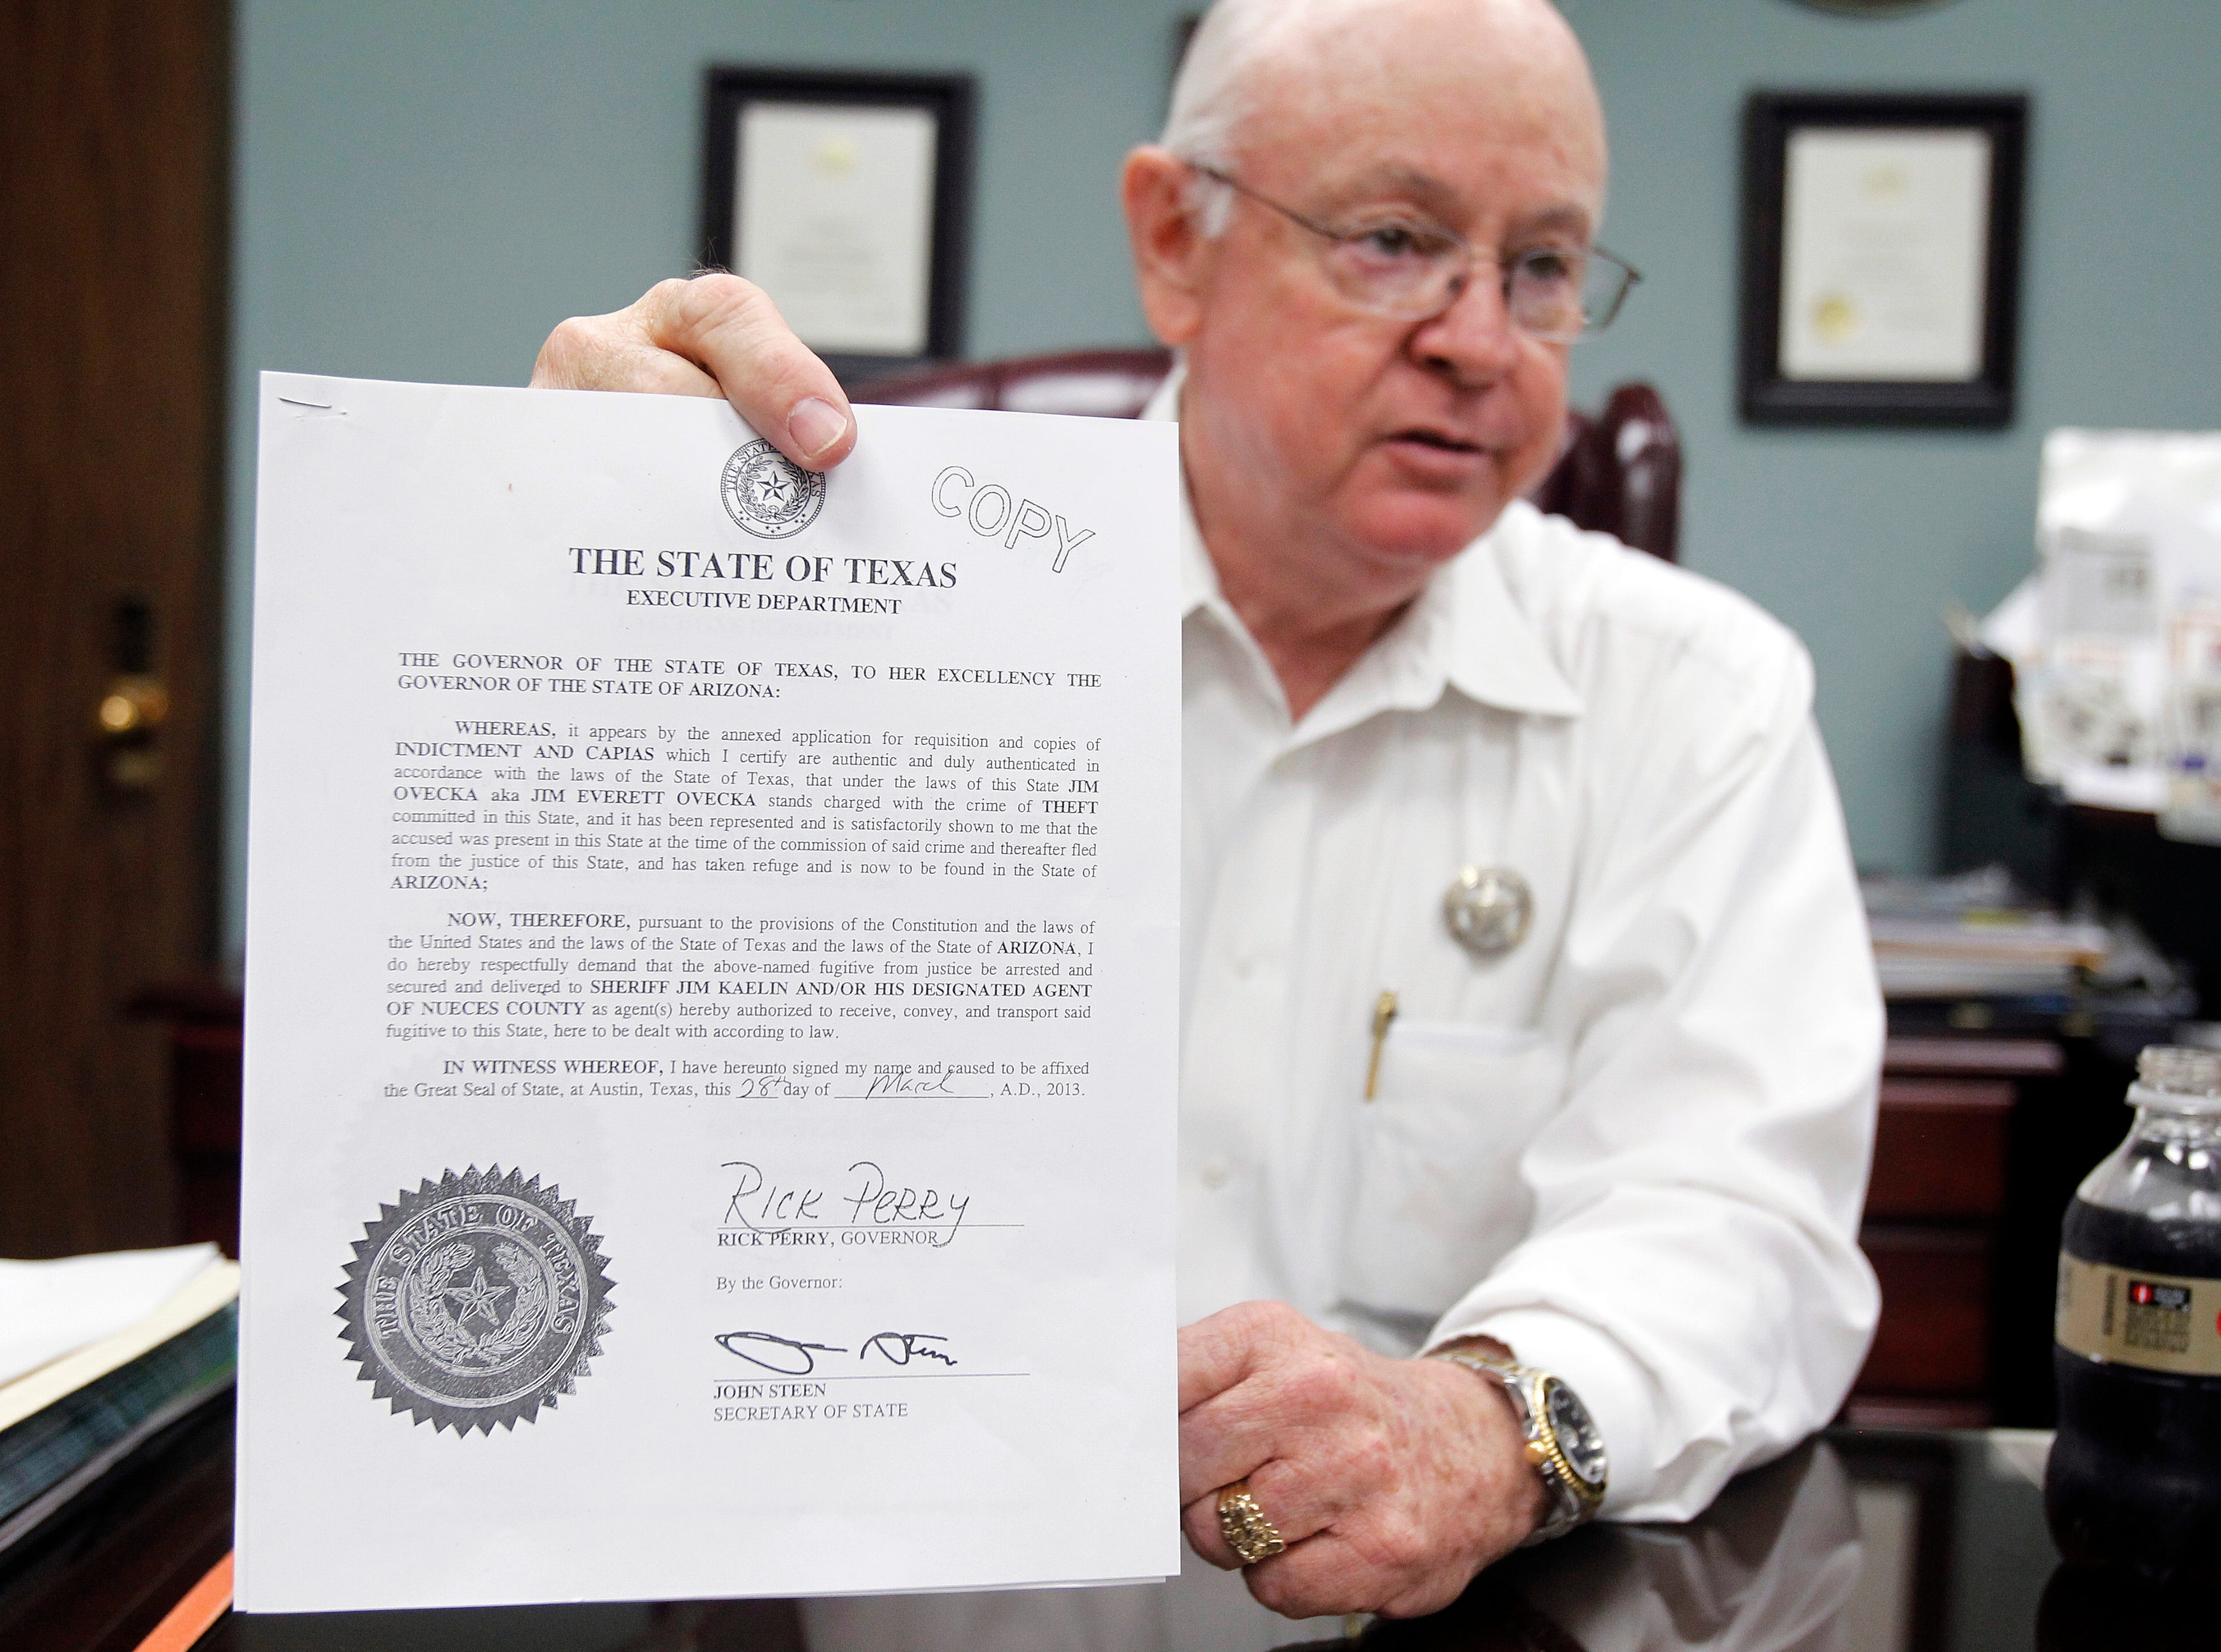 Nueces County Sheriff Jim Kaelin holds up a copy of an extradition order Thursday, Aug. 1, 2013 as he explains his department's extradition process in his office in Corpus Christi.